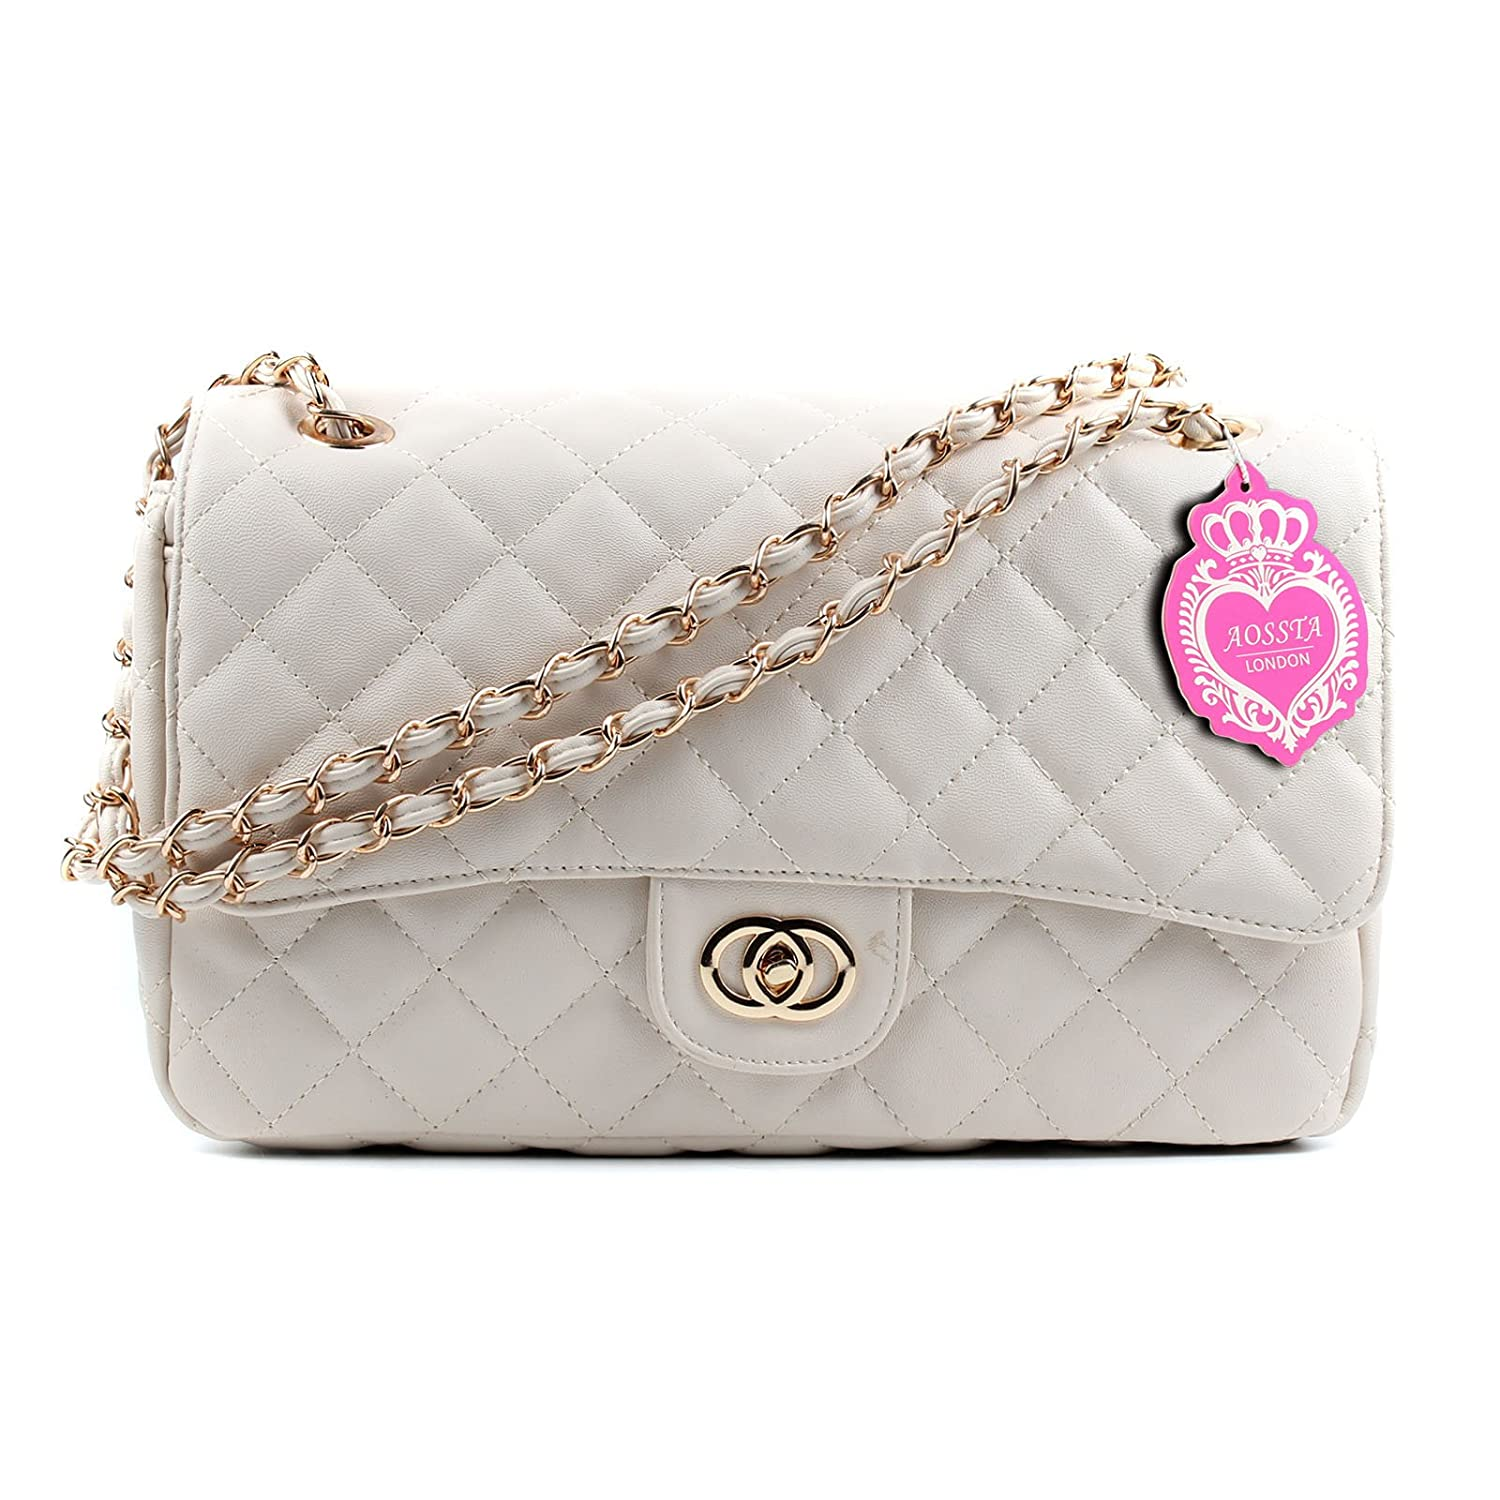 c32cd8998e Aossta Womens Large Faux Leather Quilted Twist Lock Shoulder Bag (6020  Beige)  Amazon.co.uk  Shoes   Bags